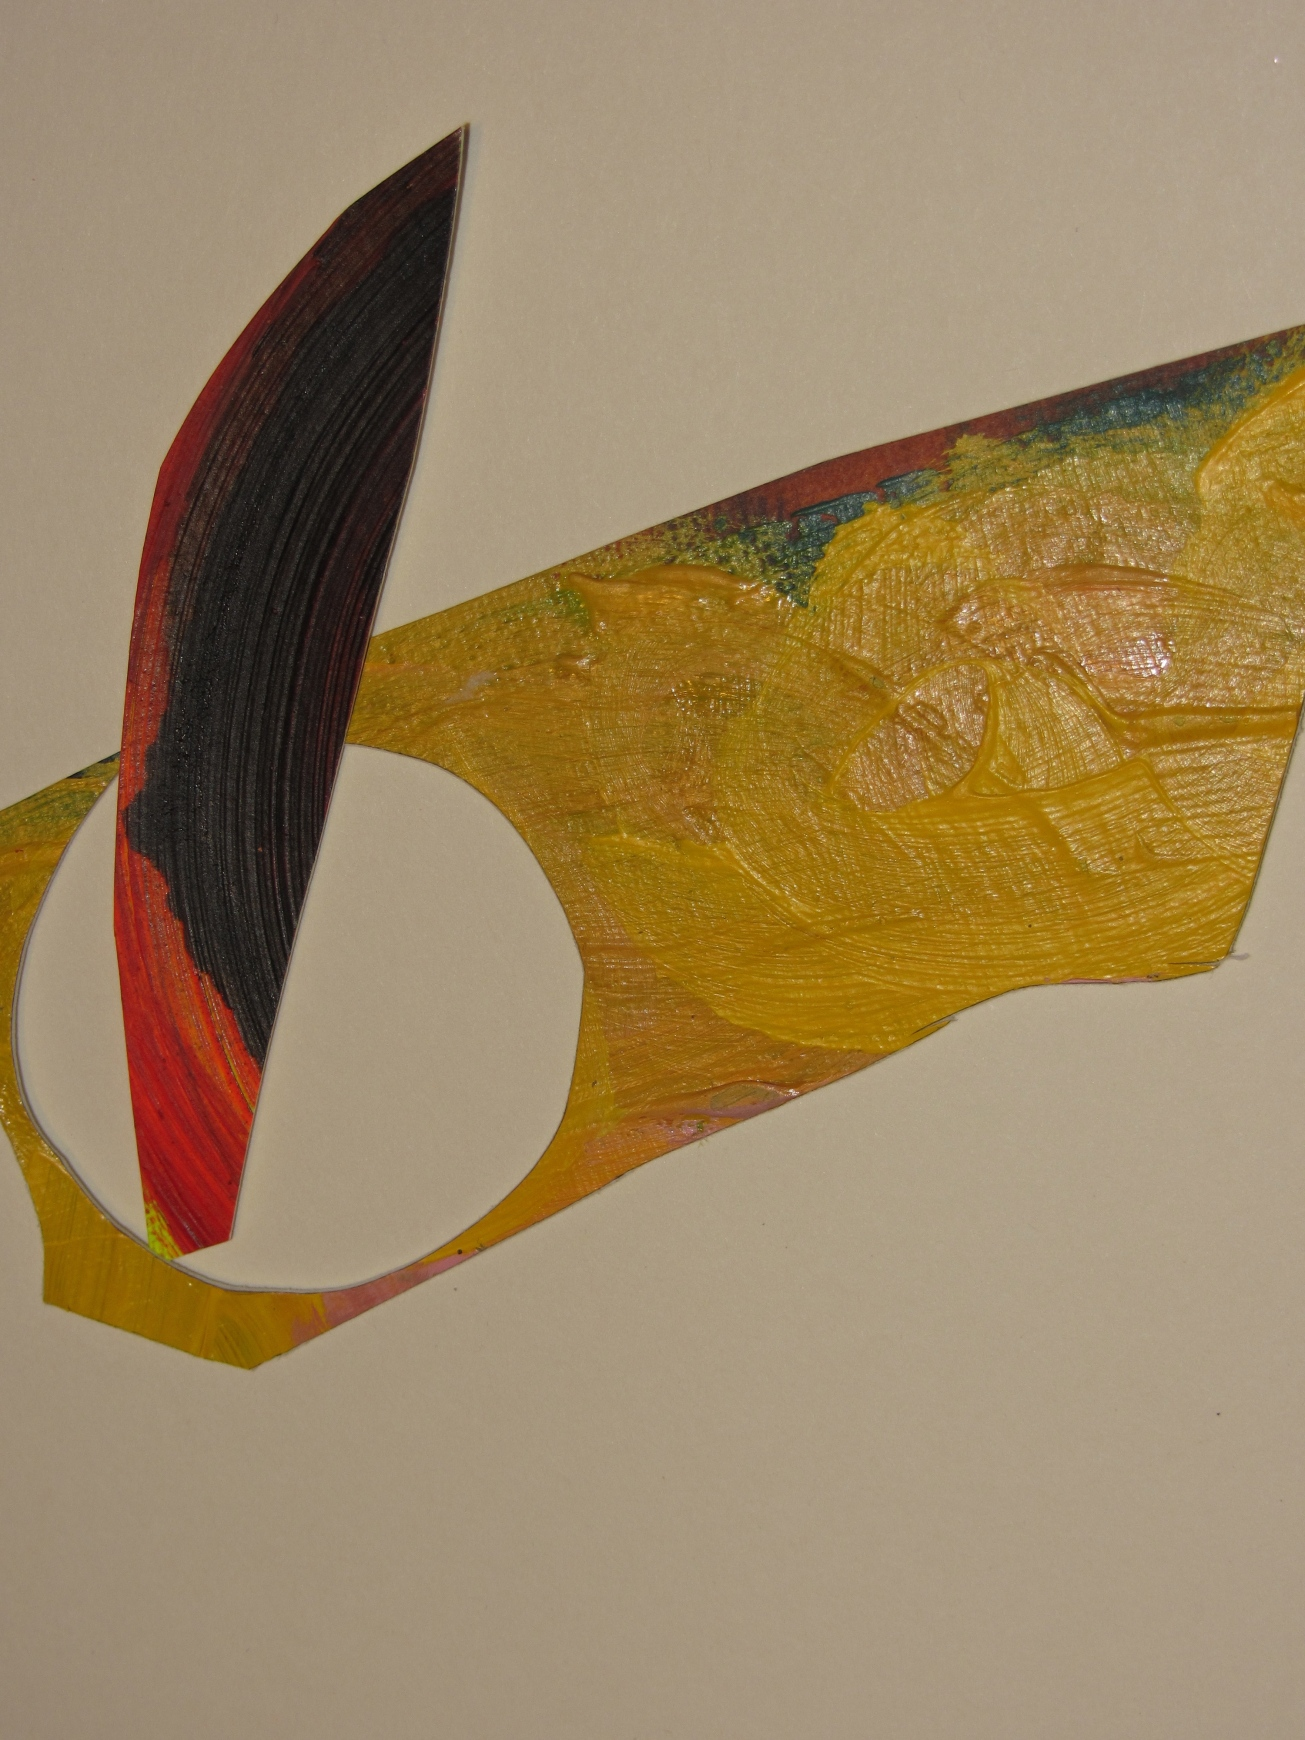 the way they occupy a space (inside-outside), acrylics con paper, cutting ups, laura barbuto, 2012-2013